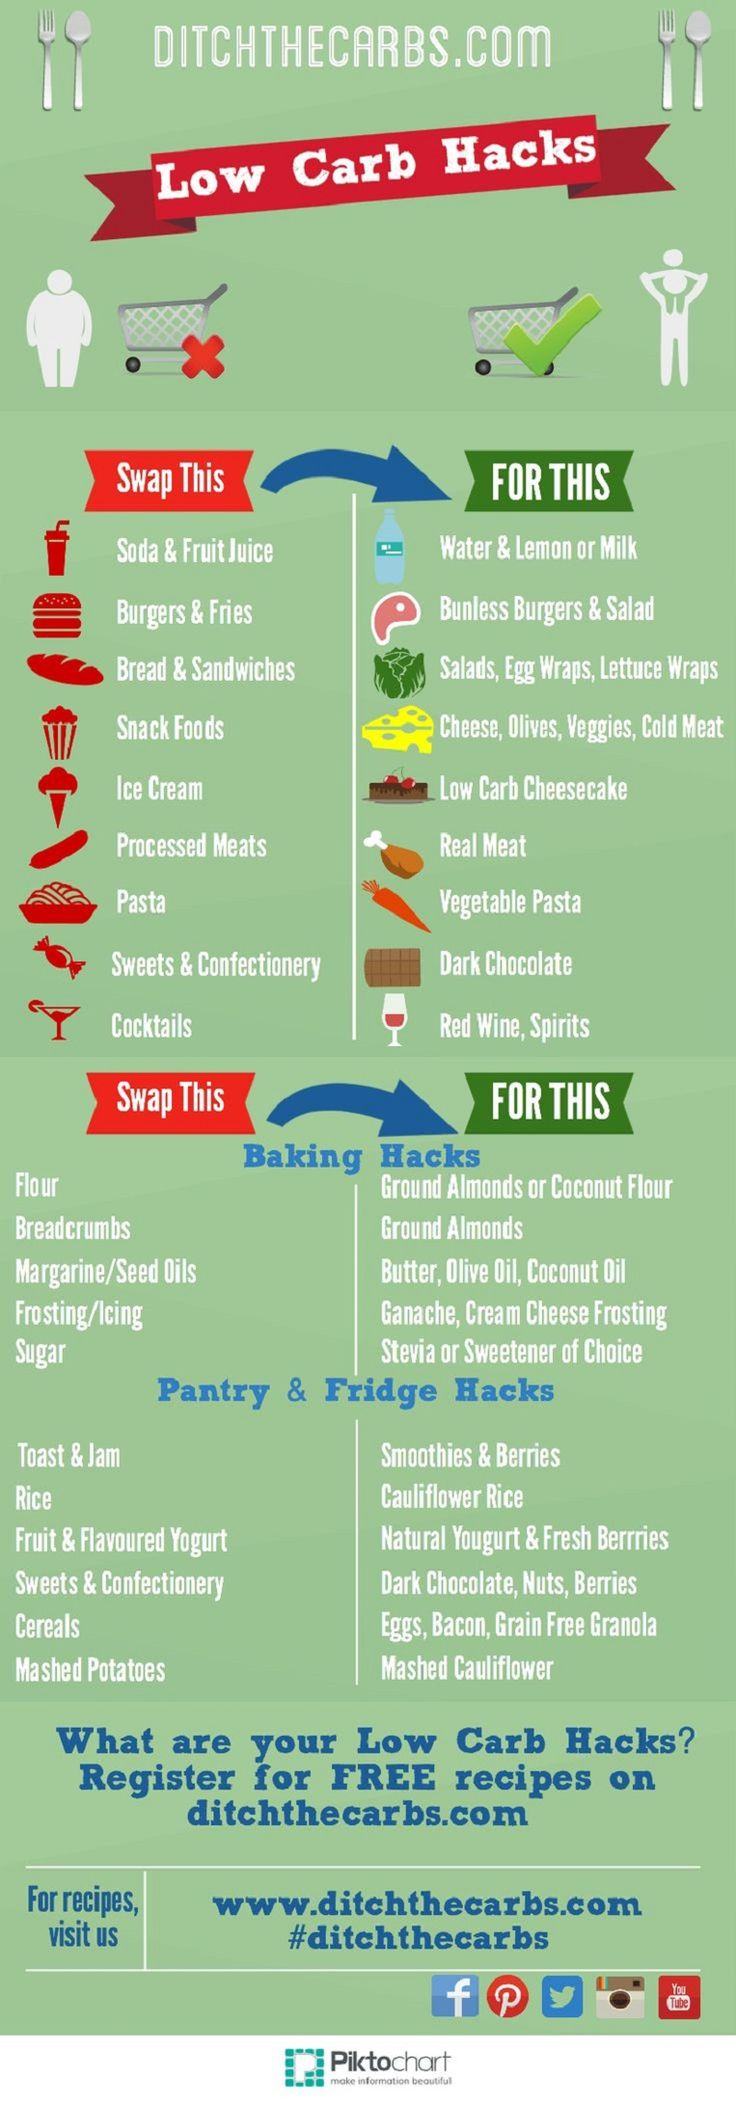 Low Carb Hacks - 14 Educational Atkins Diet Tips and Infographics